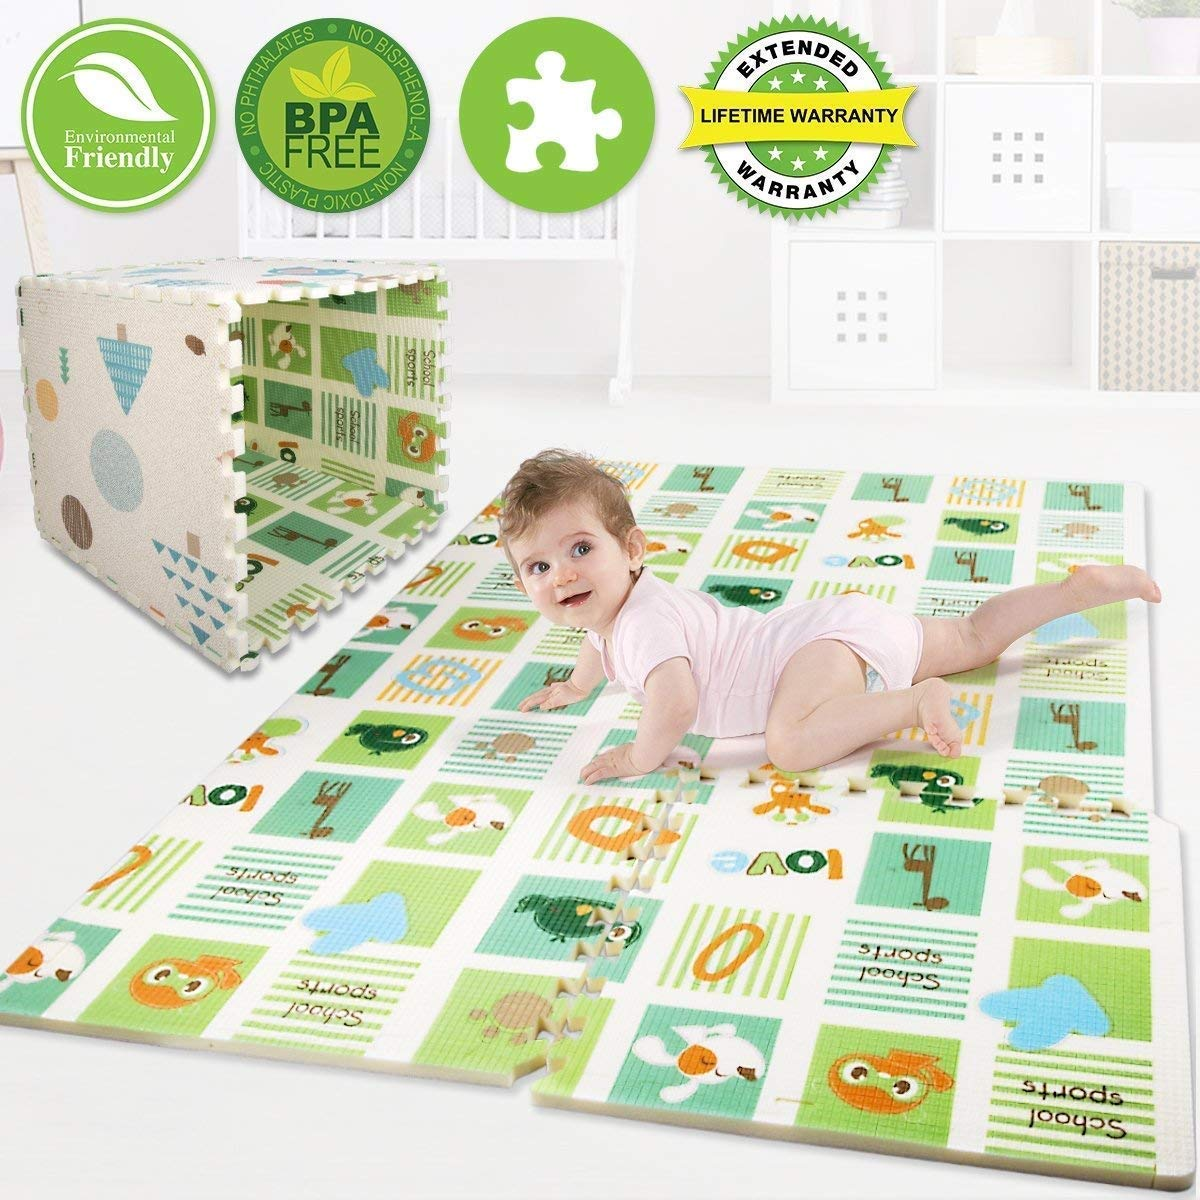 Children Rugs Kids Carpet, Premium XPE Puzzle Play Mats Non Toxic, Reversible Thick Baby Crawling Rugs Interlocking Tiles with Borders Play Room Nursery Playing Mat Toddler Infant Exercise Game Mat